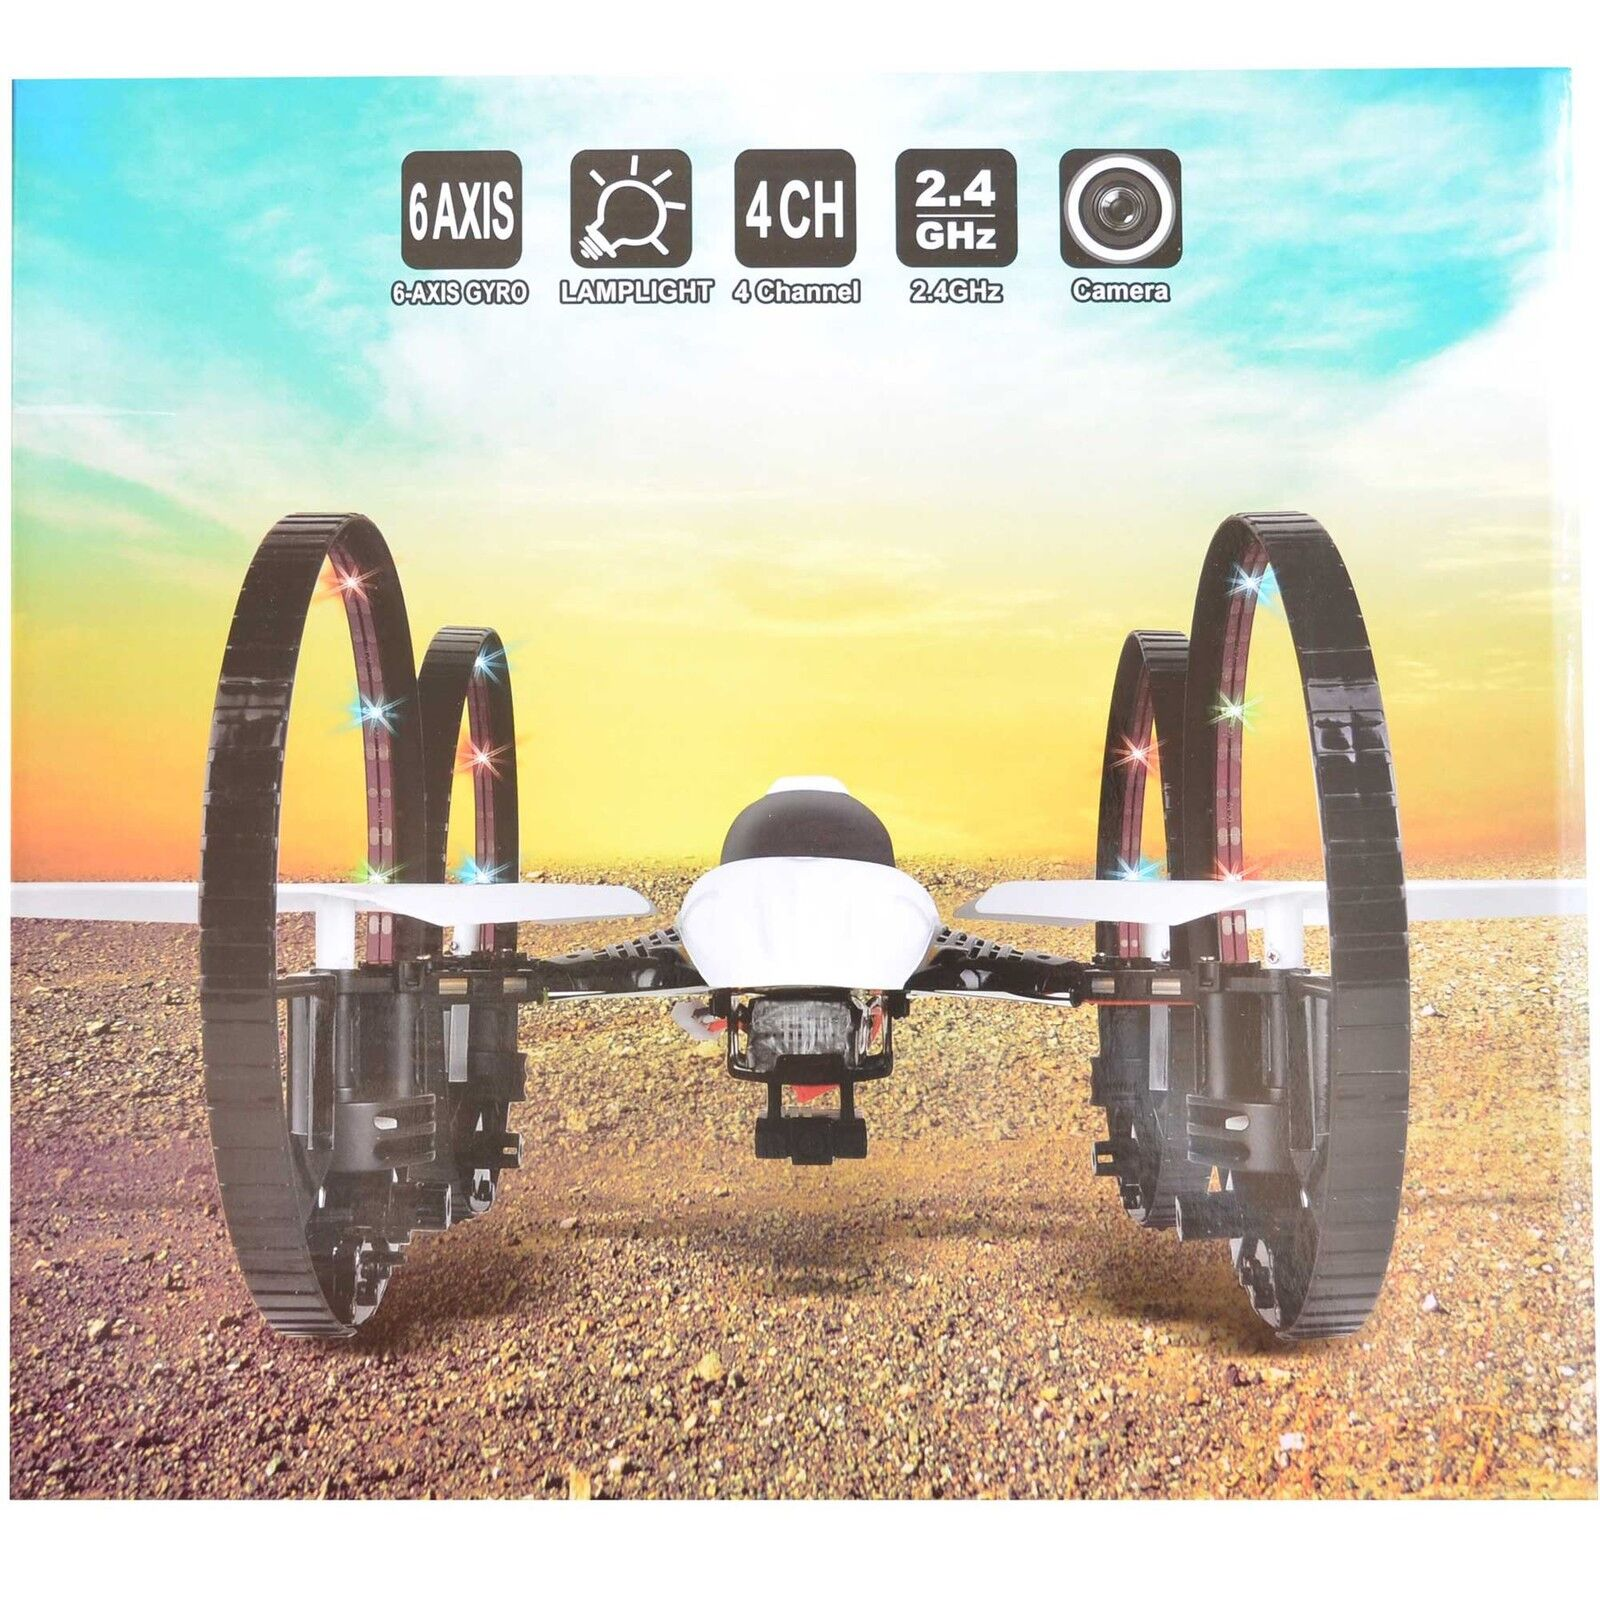 360 Degree RC Helicopter Camera 4 Channel RC Drone Quadcopter 6 Axis Gifts Boys